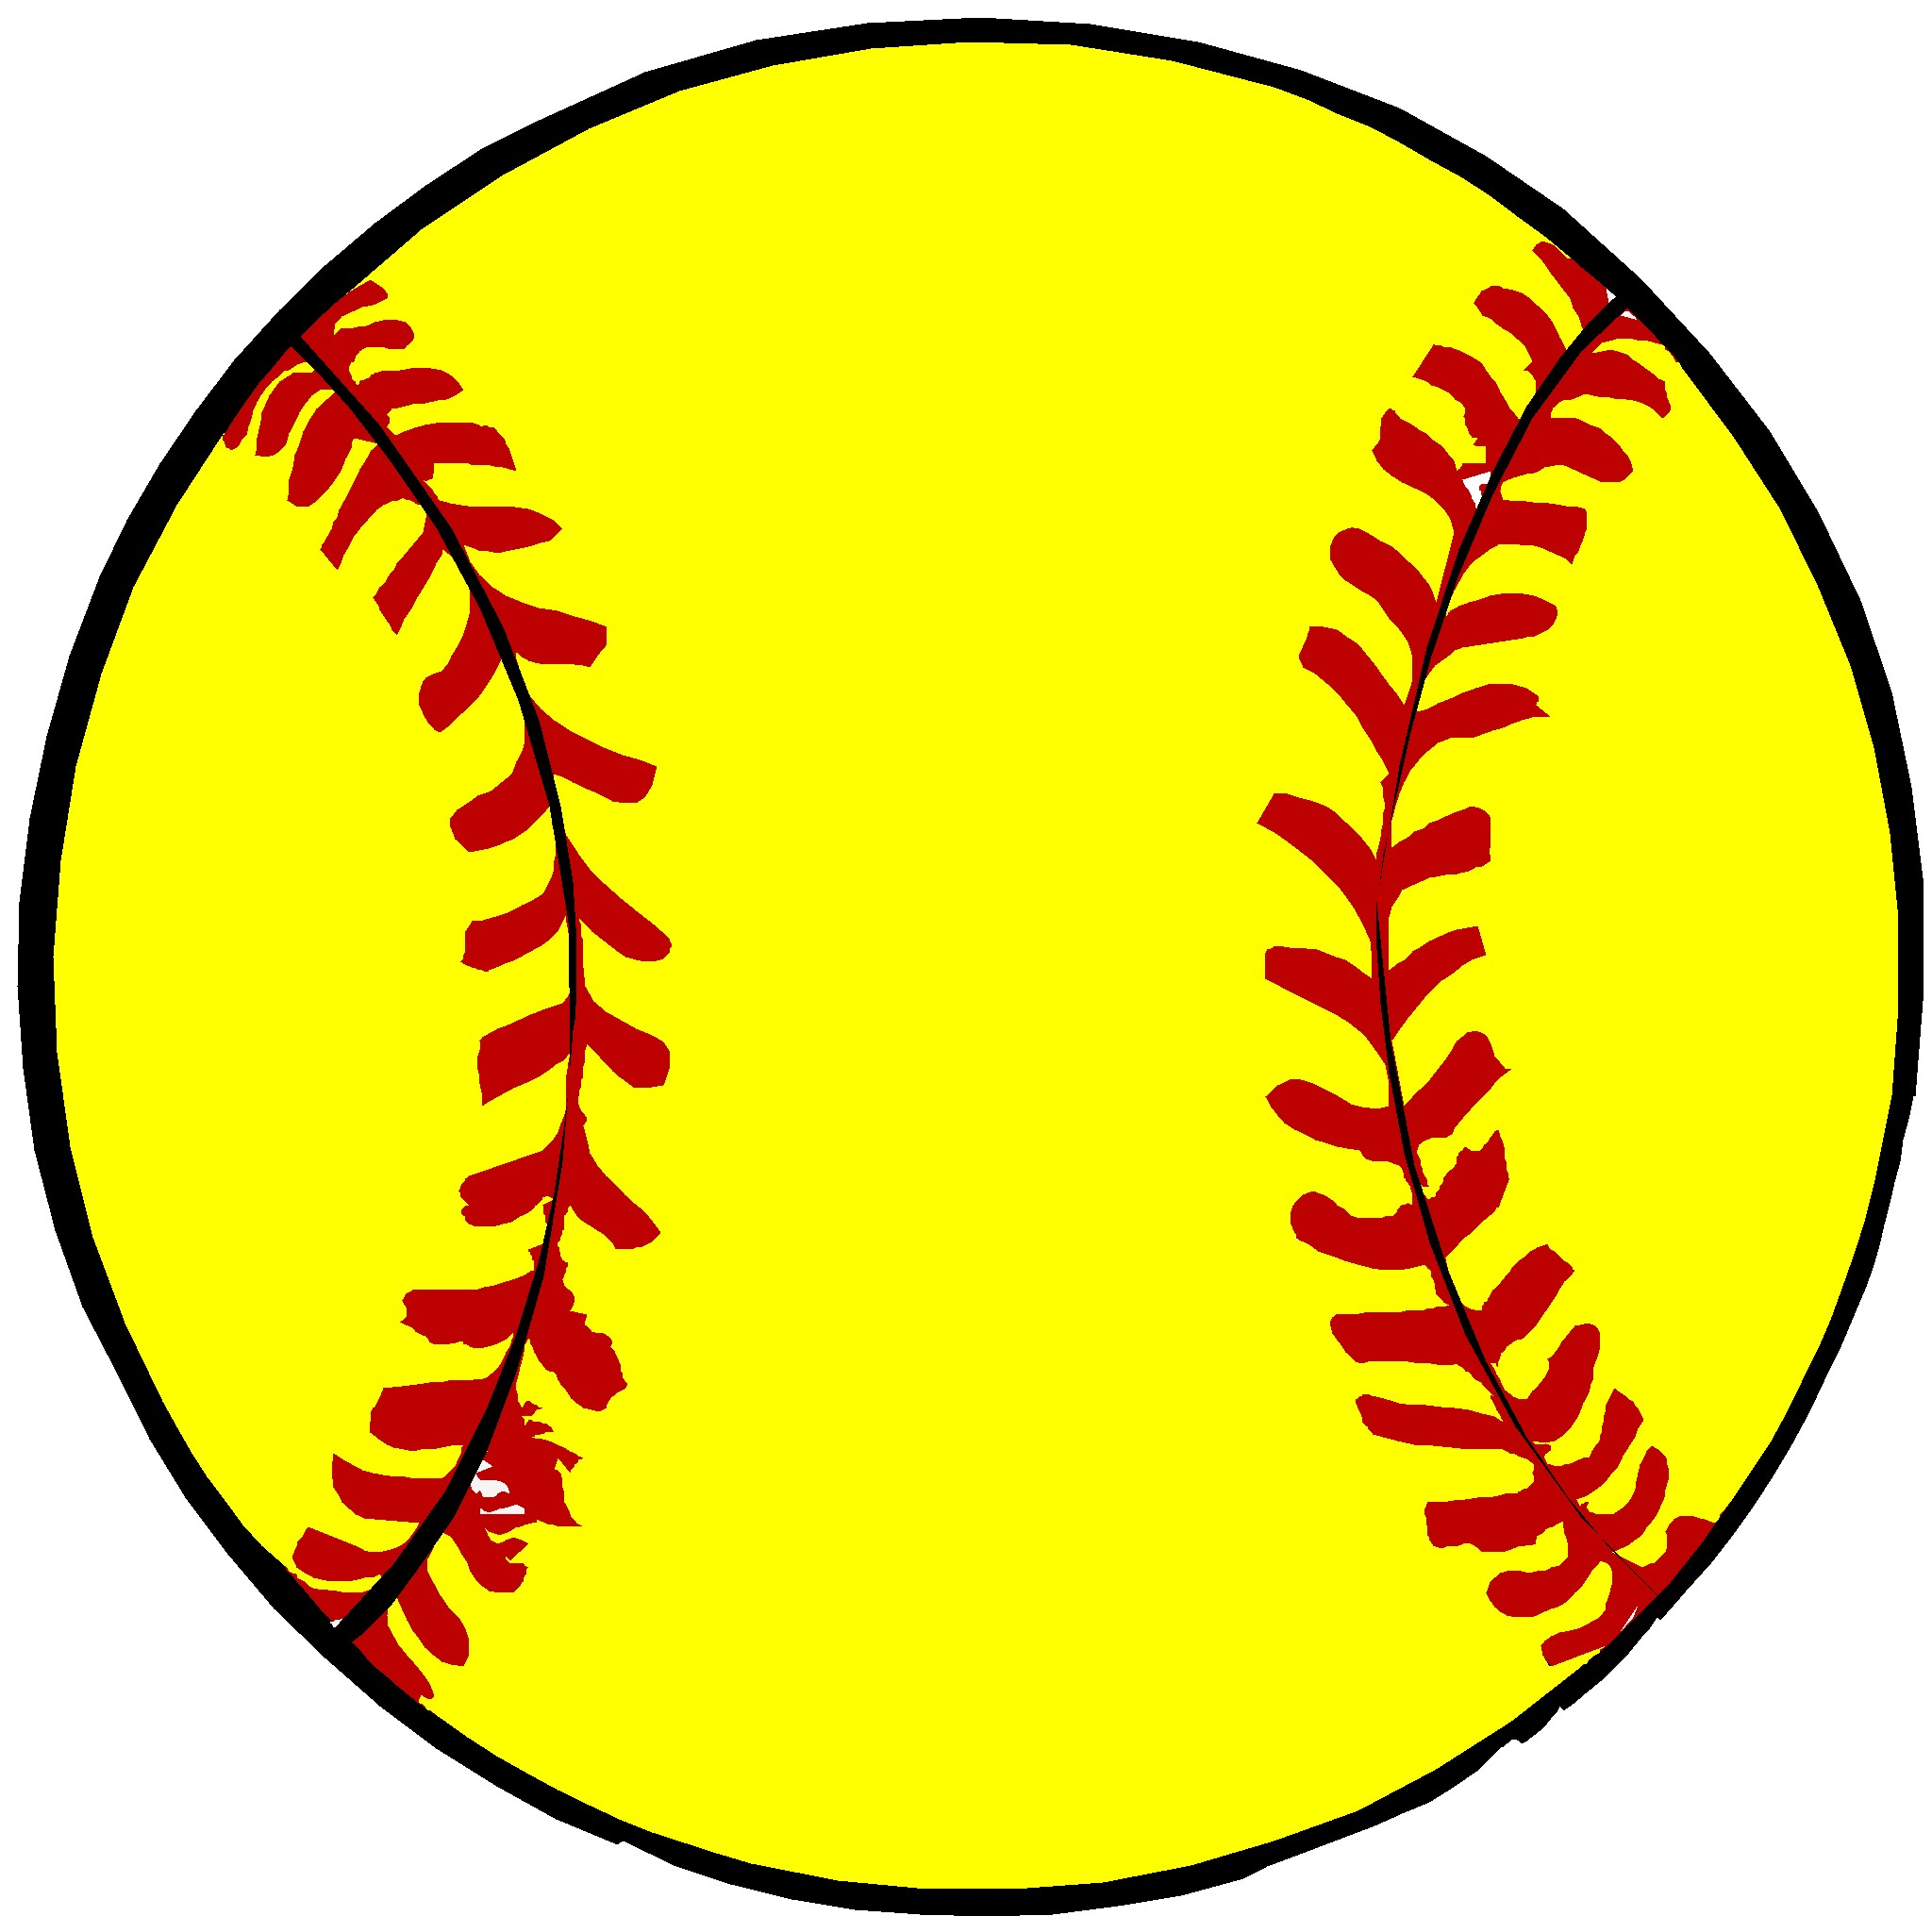 Free animated softball clipart image black and white library Free Love Softball Cliparts, Download Free Clip Art, Free Clip Art ... image black and white library